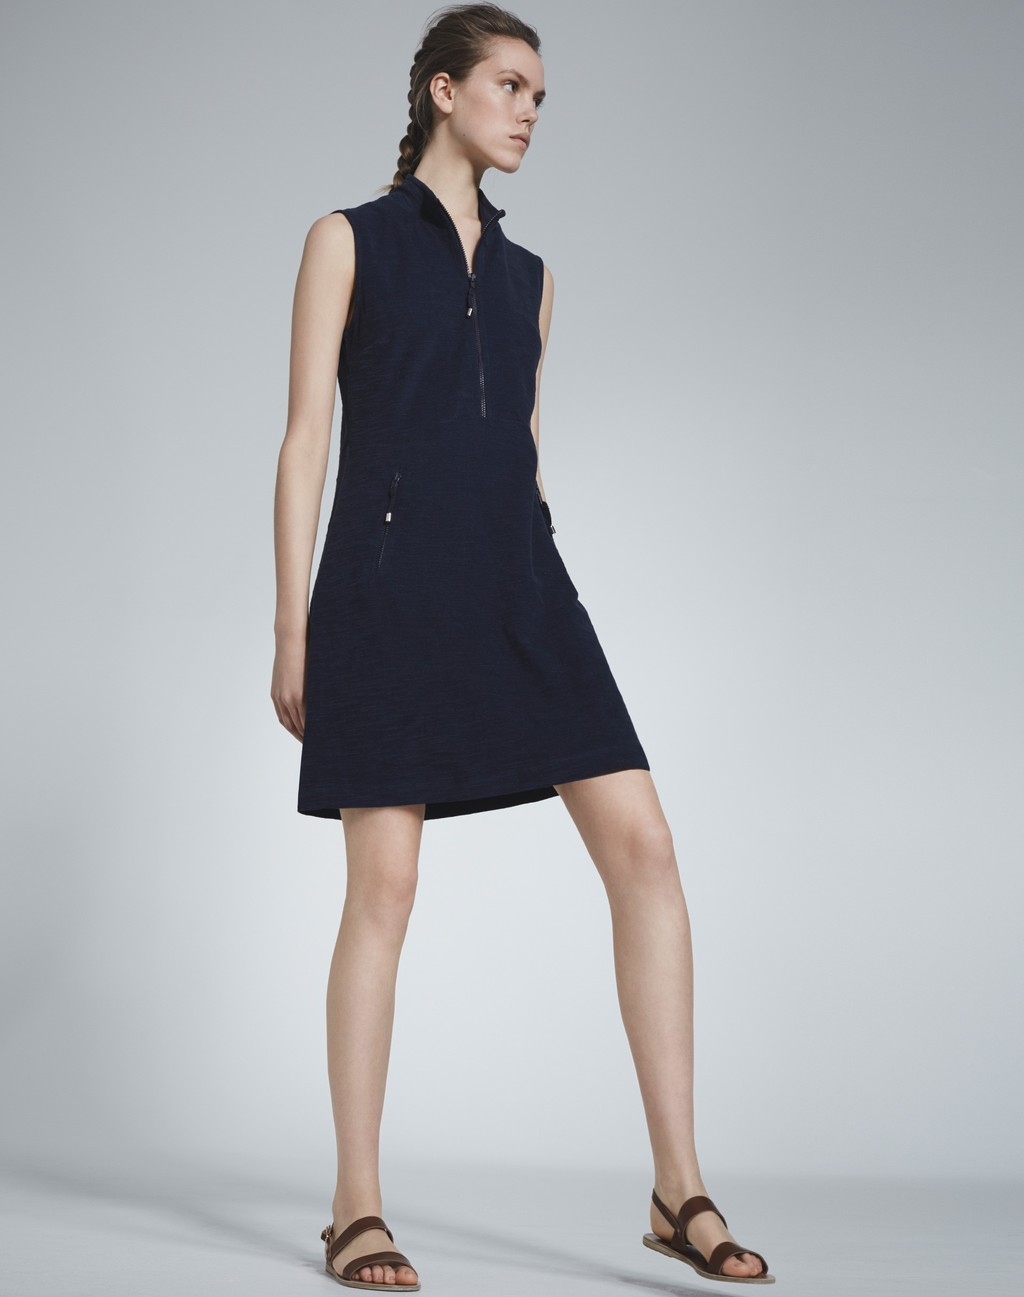 Towelling Dress Navy - style: shirt; neckline: shirt collar/peter pan/zip with opening; pattern: plain; sleeve style: sleeveless; predominant colour: navy; occasions: casual; length: just above the knee; fit: body skimming; fibres: cotton - 100%; sleeve length: sleeveless; pattern type: fabric; texture group: other - light to midweight; season: s/s 2016; wardrobe: basic